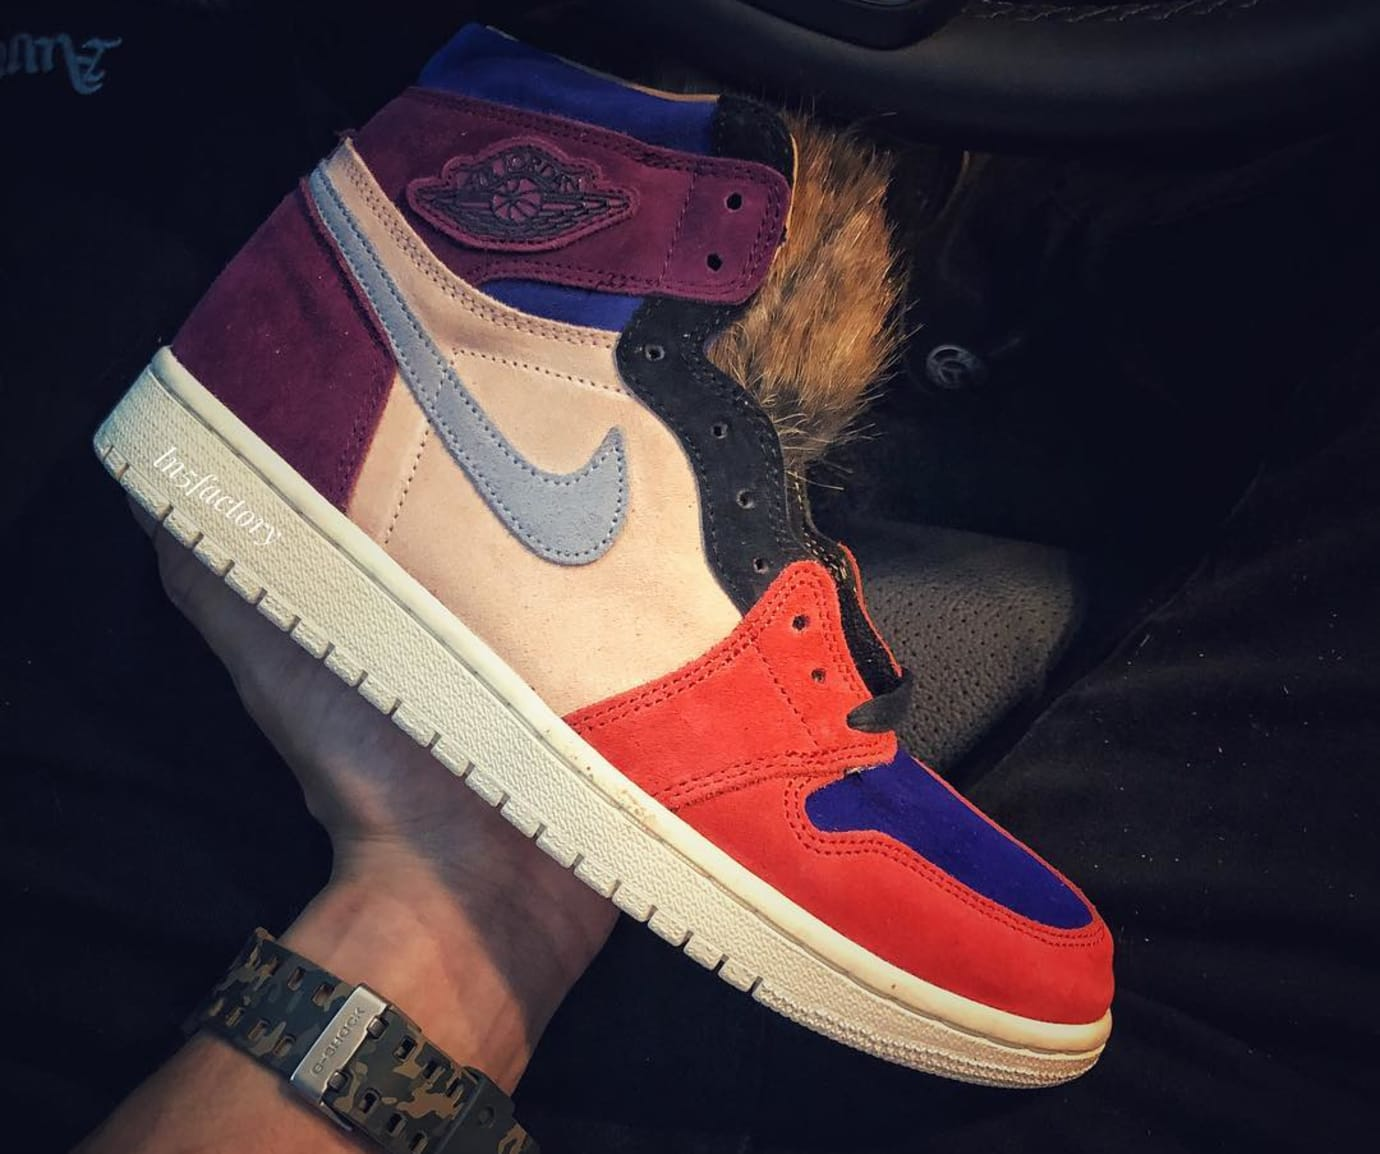 60bad59be631 Image via  ln5factory · Aleali May x Air Jordan 1  Viotech  (Lateral)